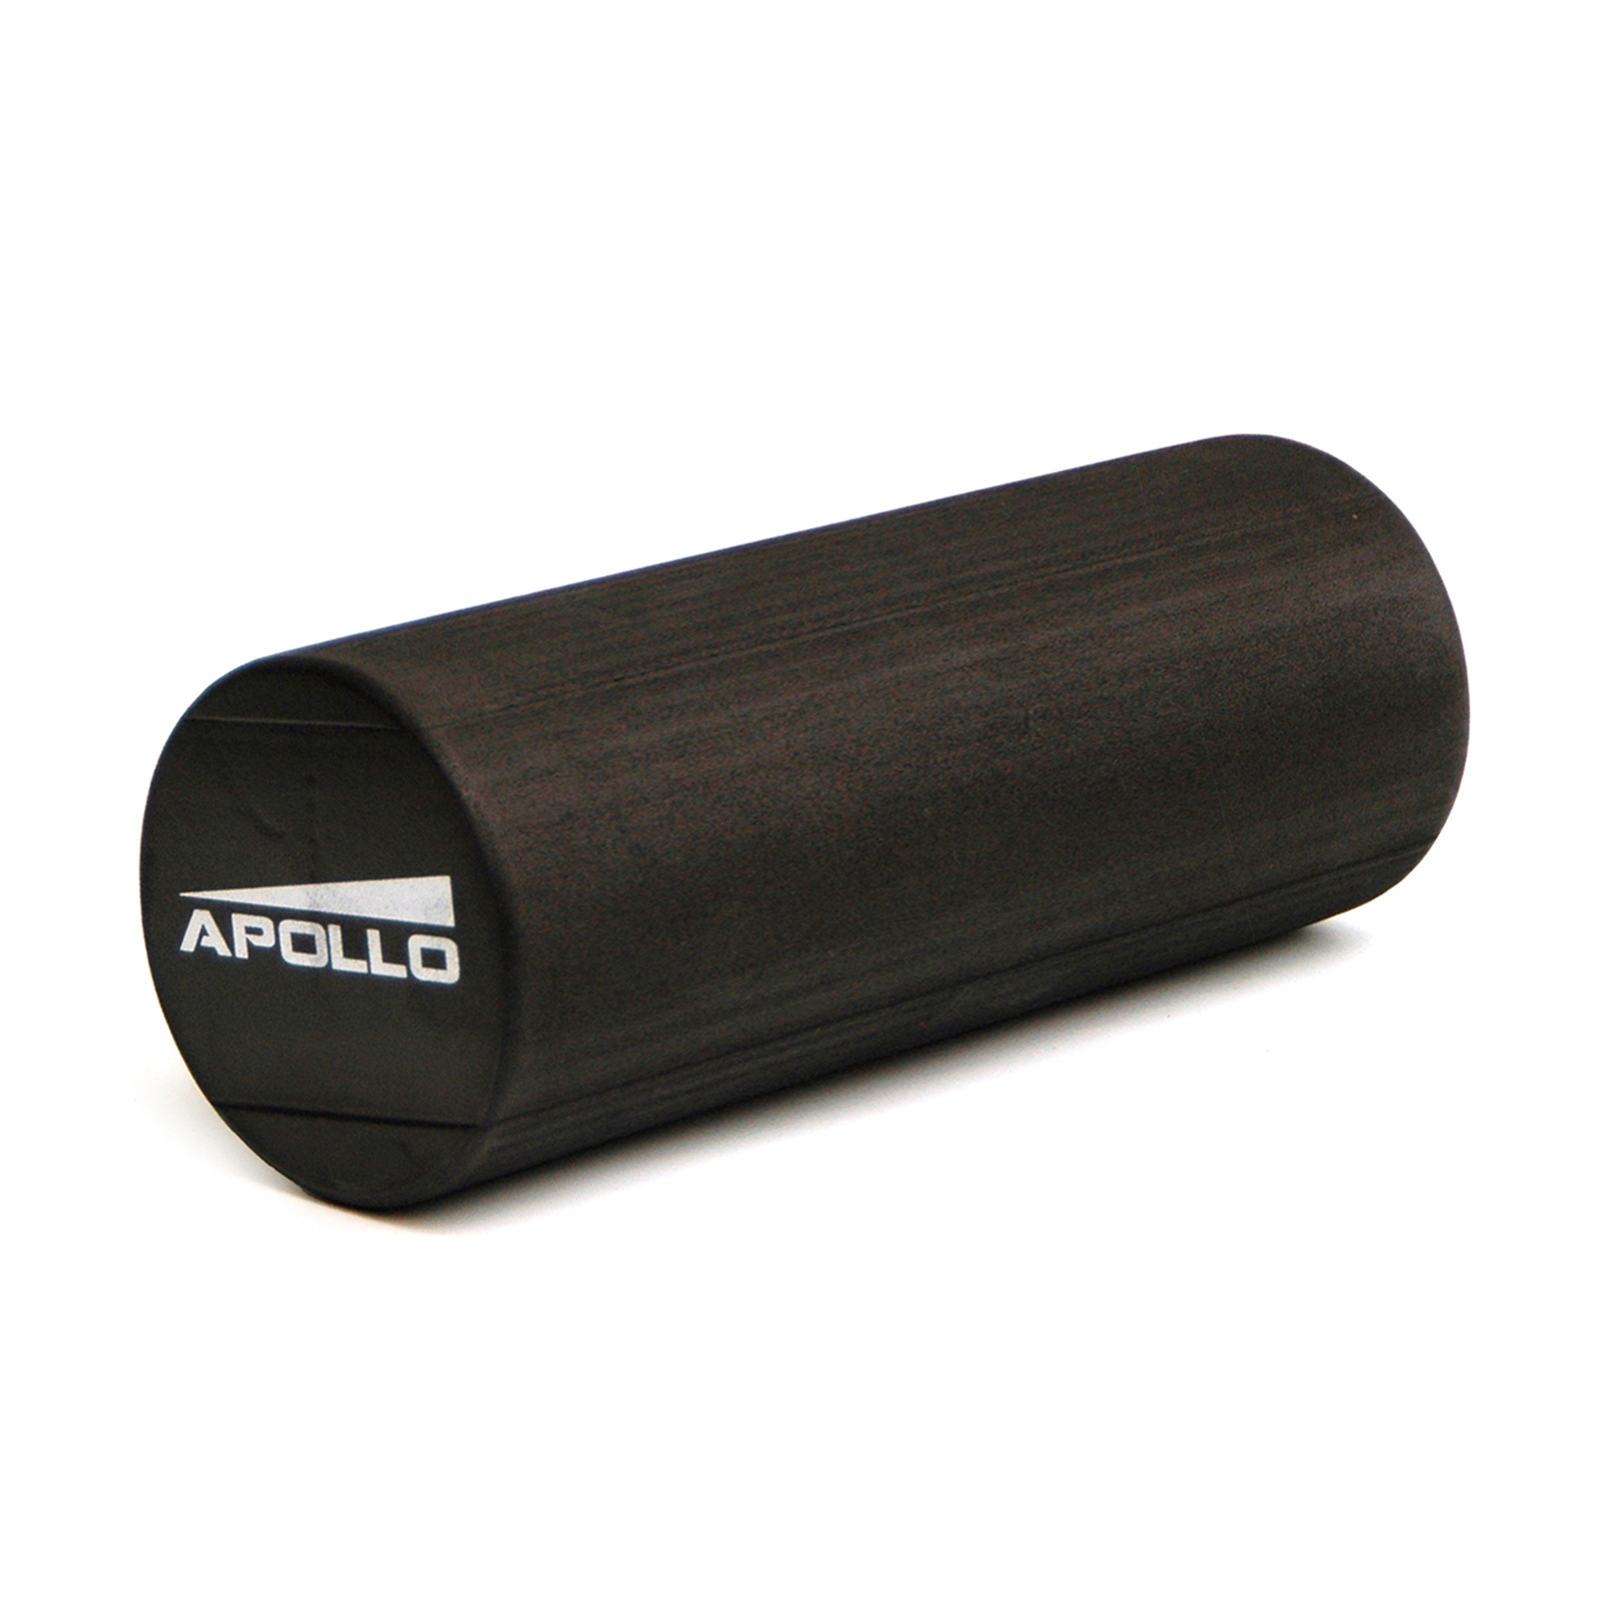 APOLLO Massage & Pilates Rolle Delhi 15x45cm Schaumstoffrolle schwarz